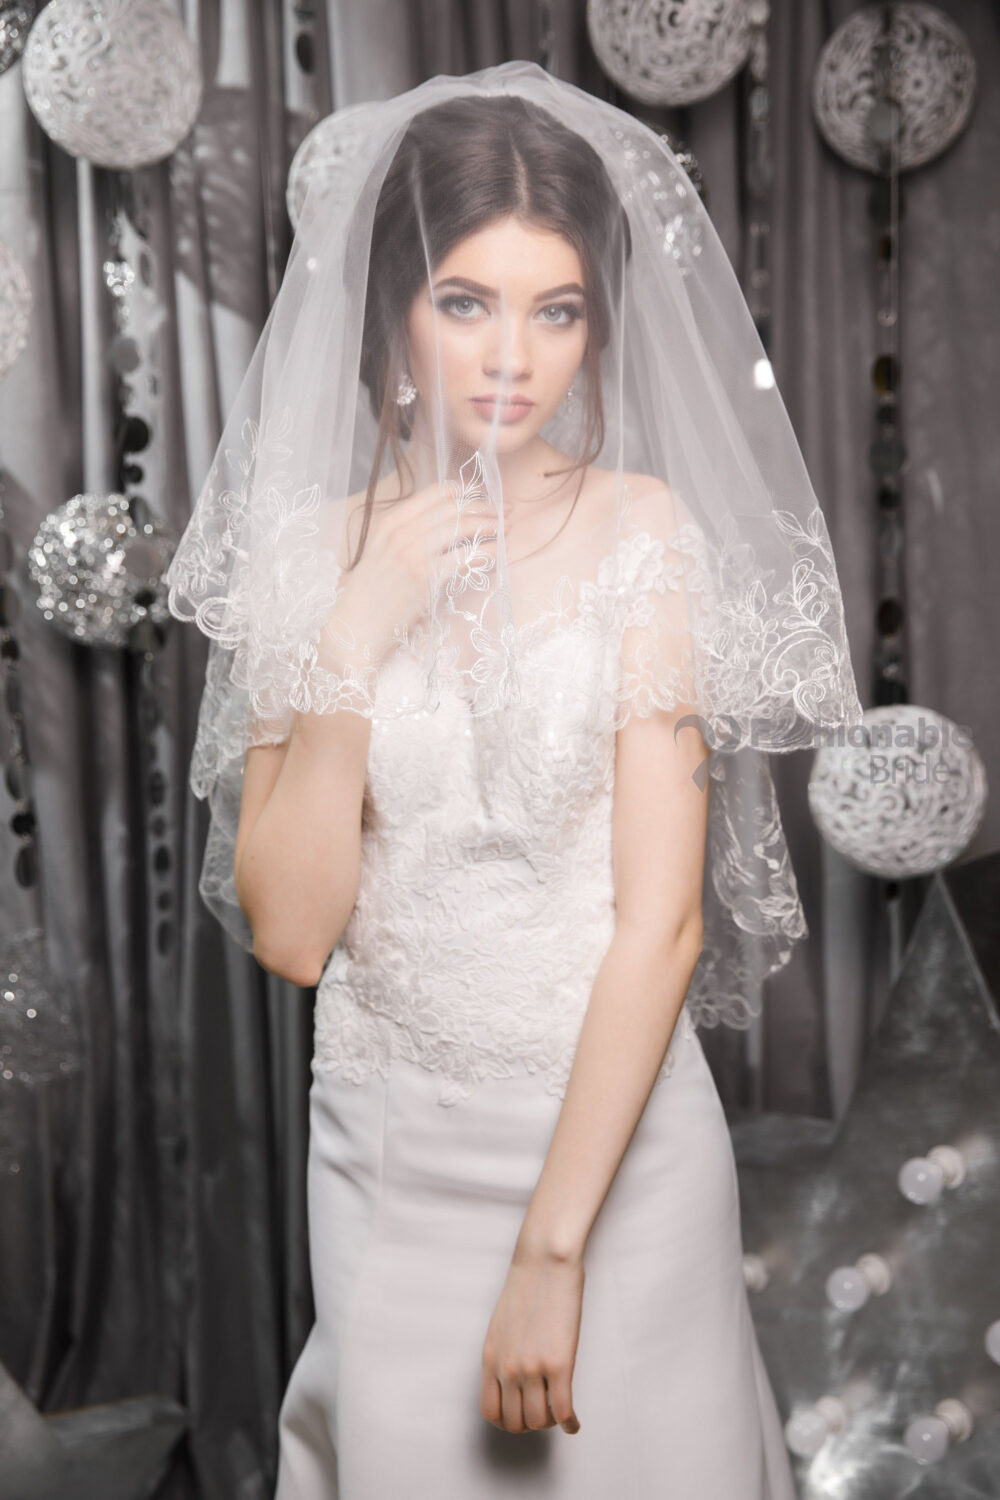 Two-Tier Veil, Two Tier Cathedral Length, Chapel Fingertip Wedding Elbow Length